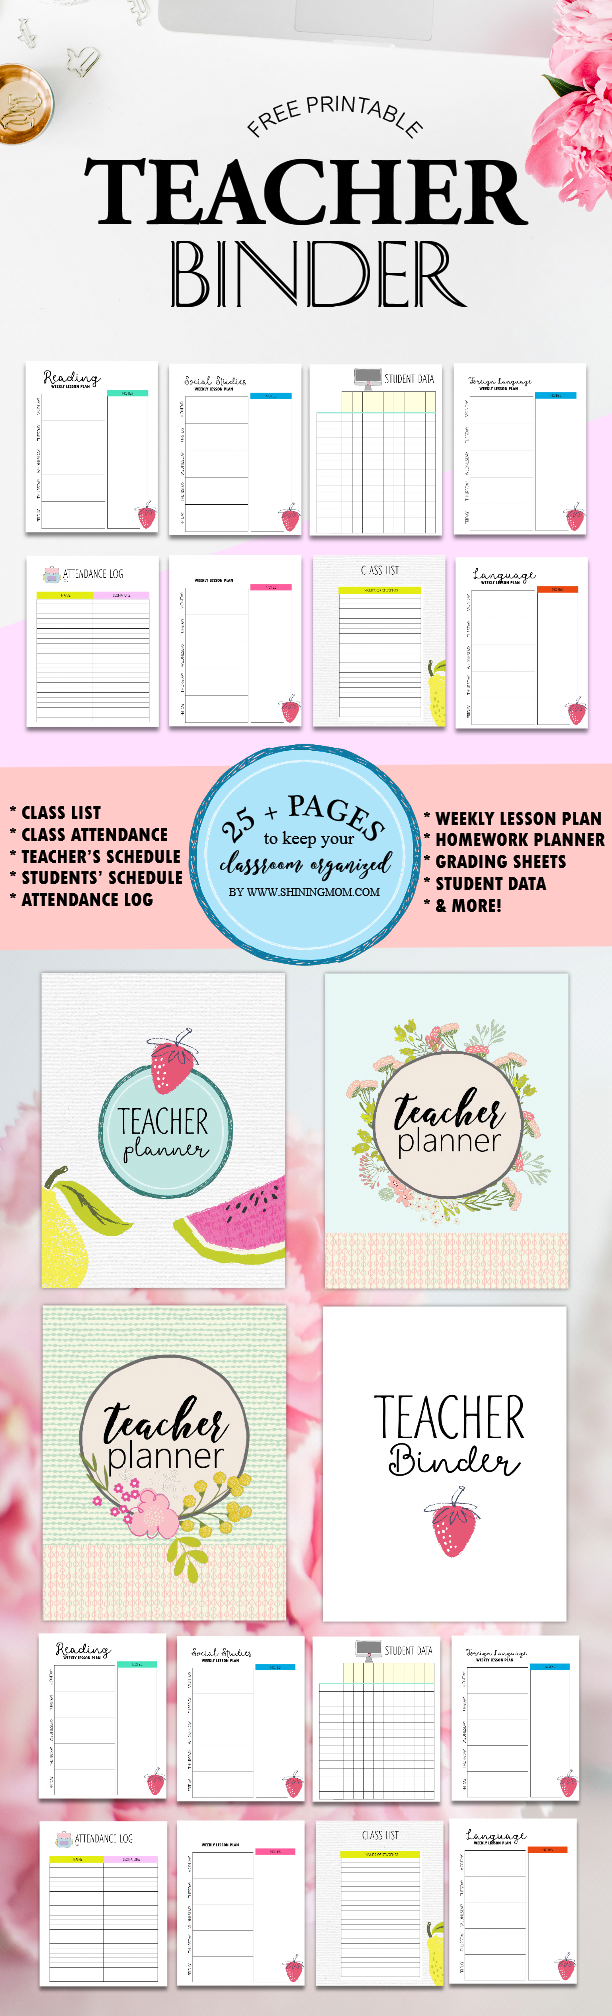 photograph regarding Teacher Binder Printables called Totally free Instructor Binder Printables: Earlier mentioned 25 Beautiful Developing